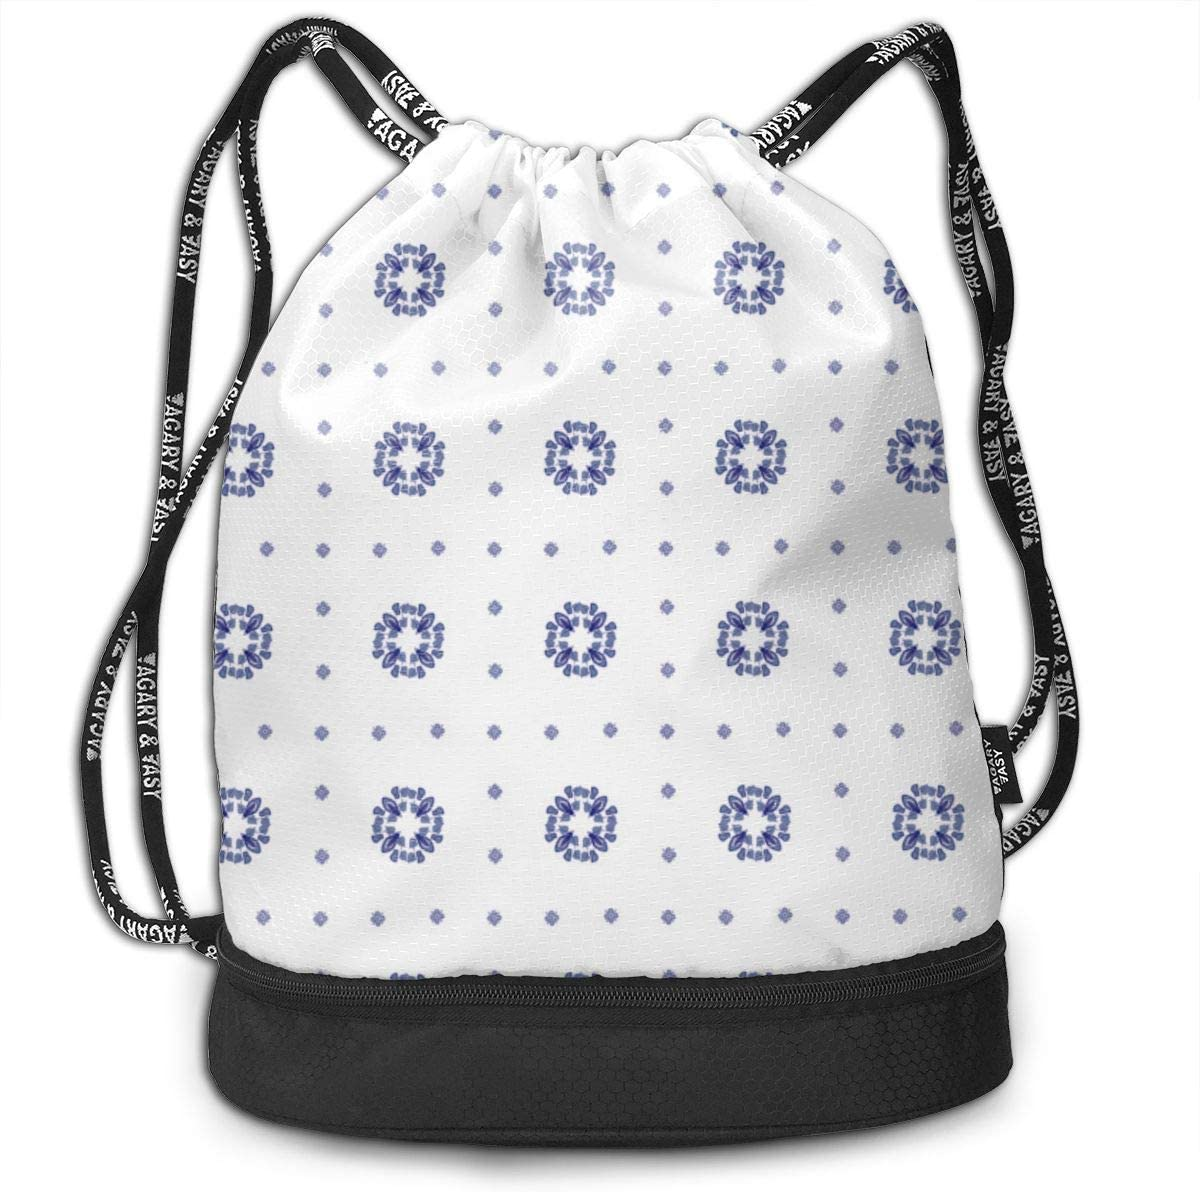 Delft Plaid Dots Drawstring Backpack Sports Athletic Gym Cinch Sack String Storage Bags for Hiking Travel Beach